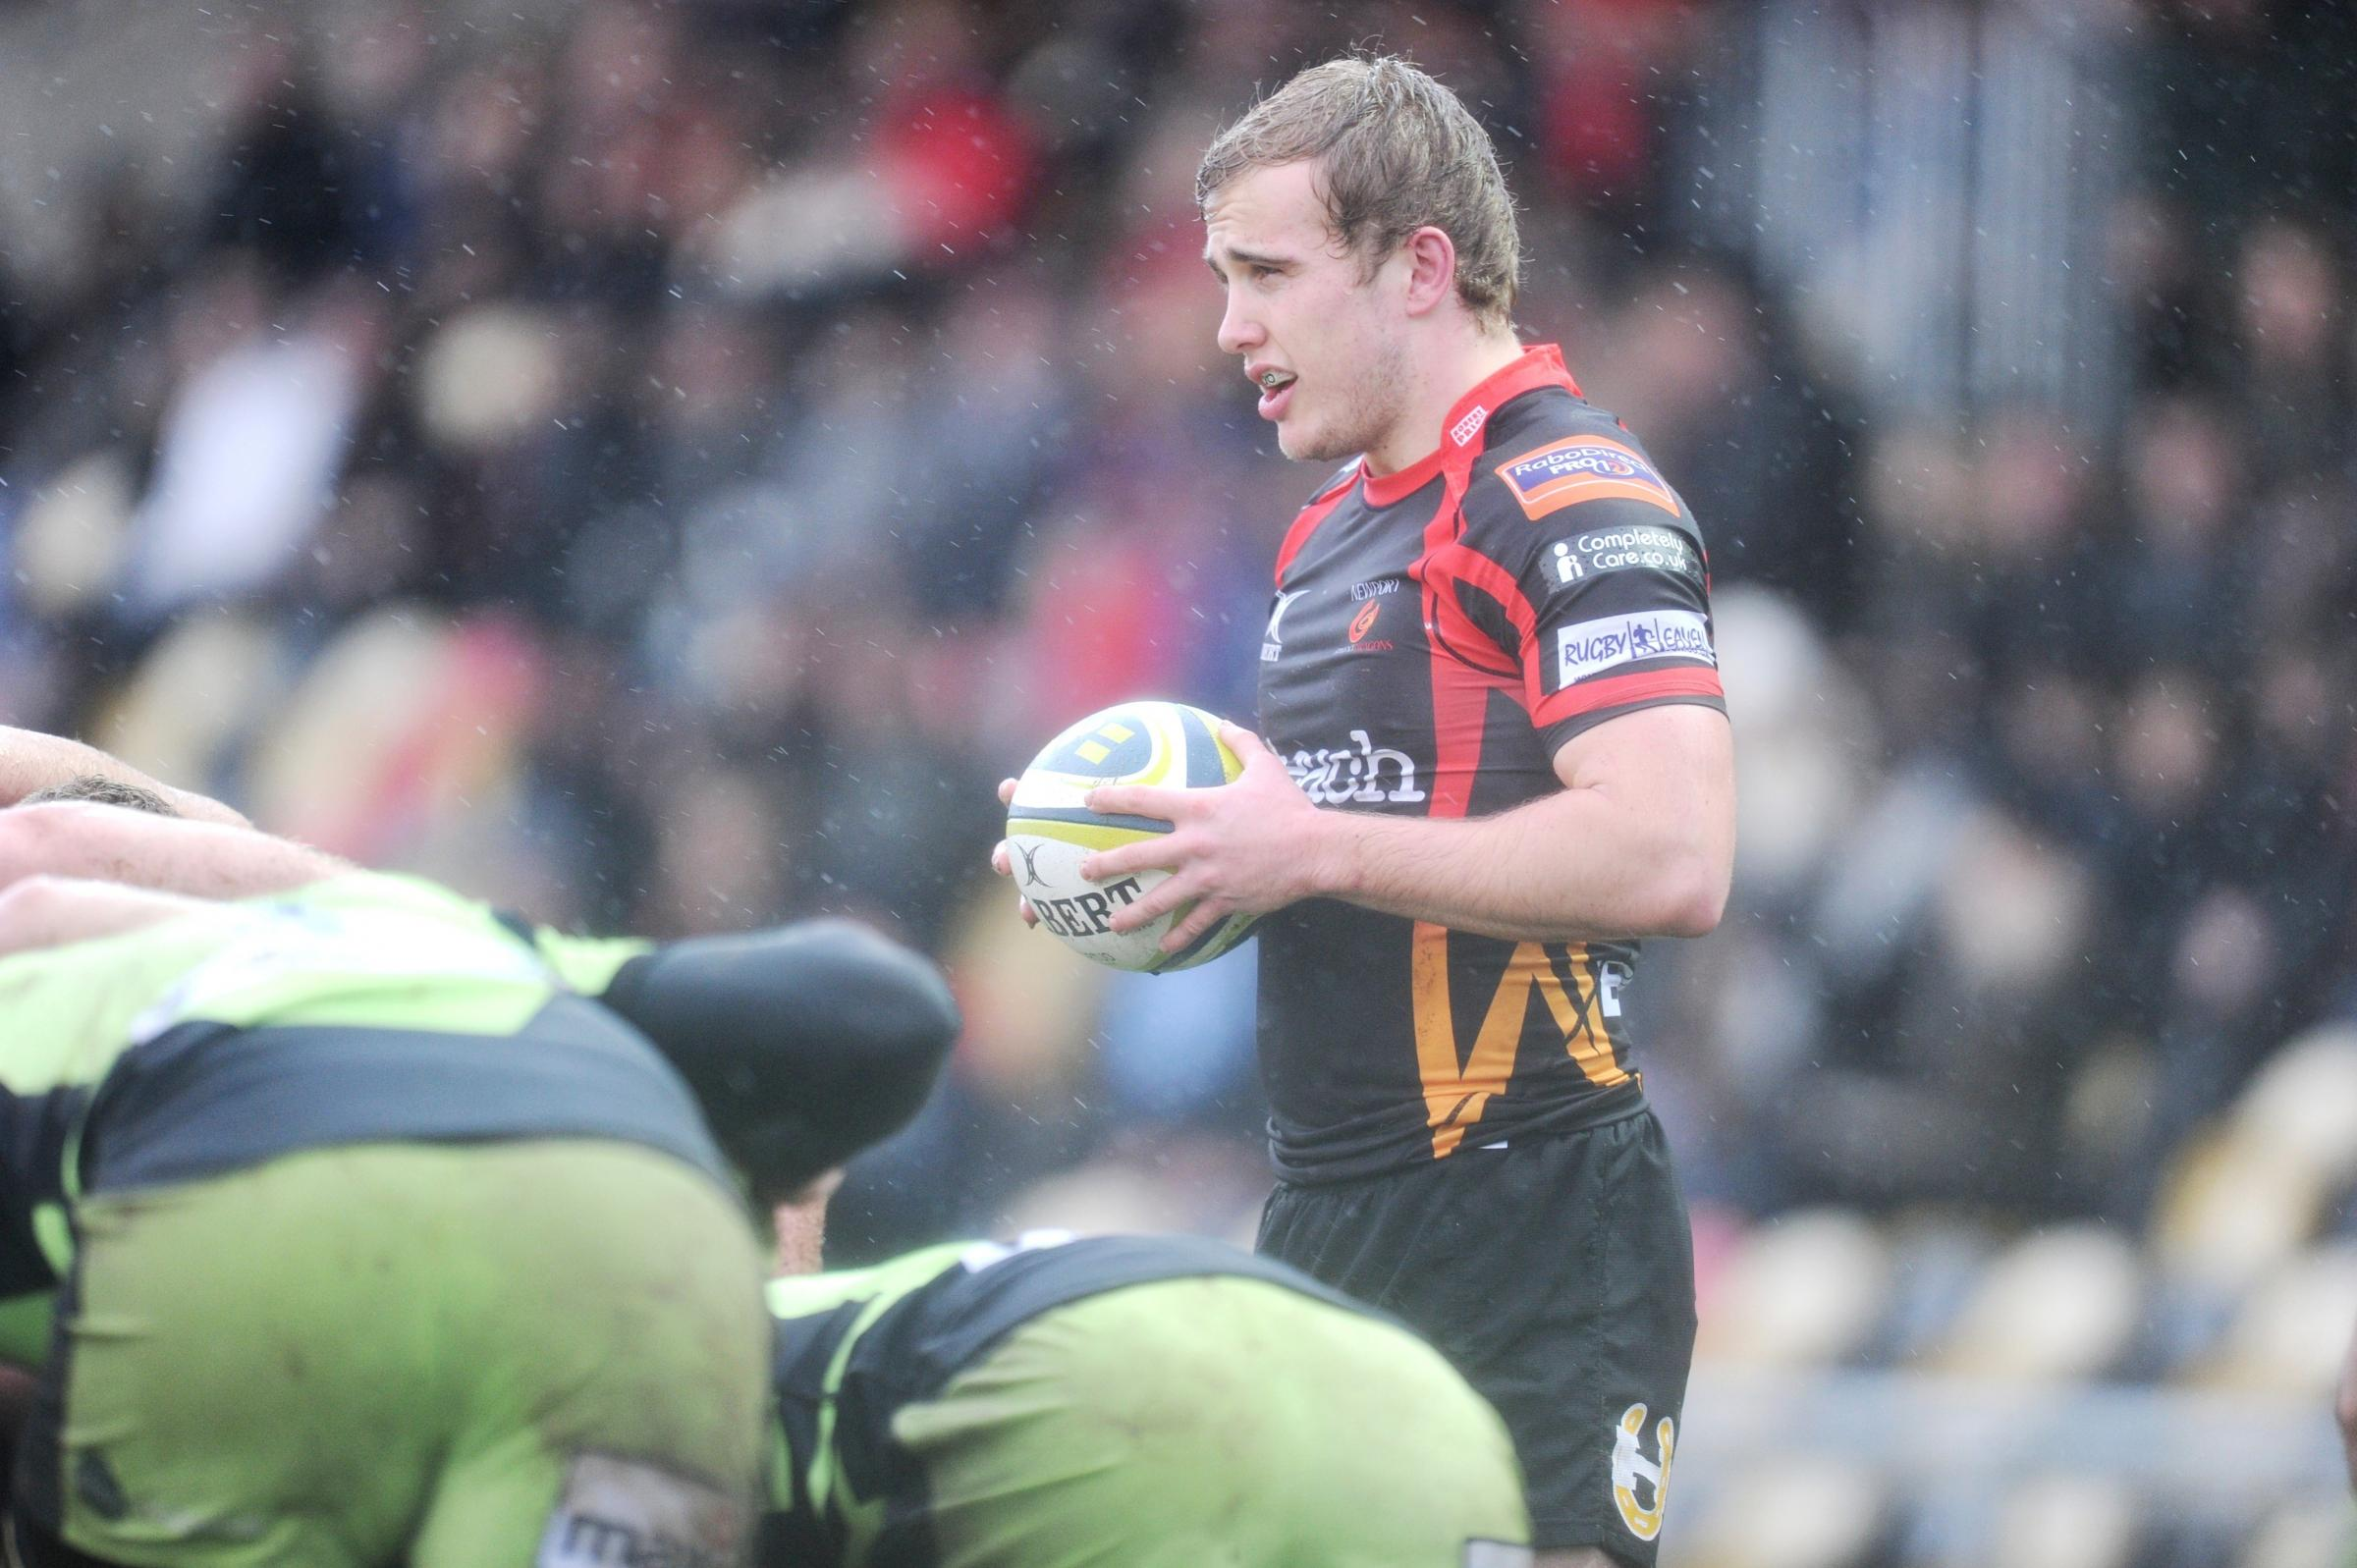 Newport Gwent Dragons v Northampton Saints in LV Cup.  Heavy downpours and hail stones interrupted the first half of the game as Scrum Half Luc Jones prepa